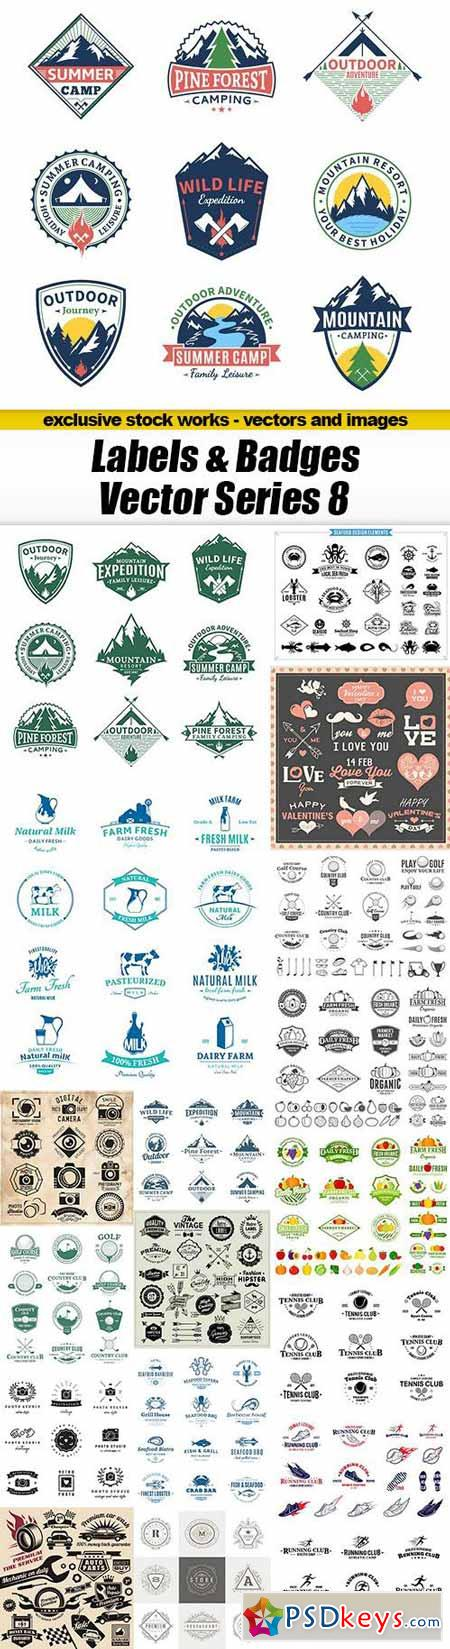 Labels & Badges Vector Series 8 - 18xEPS